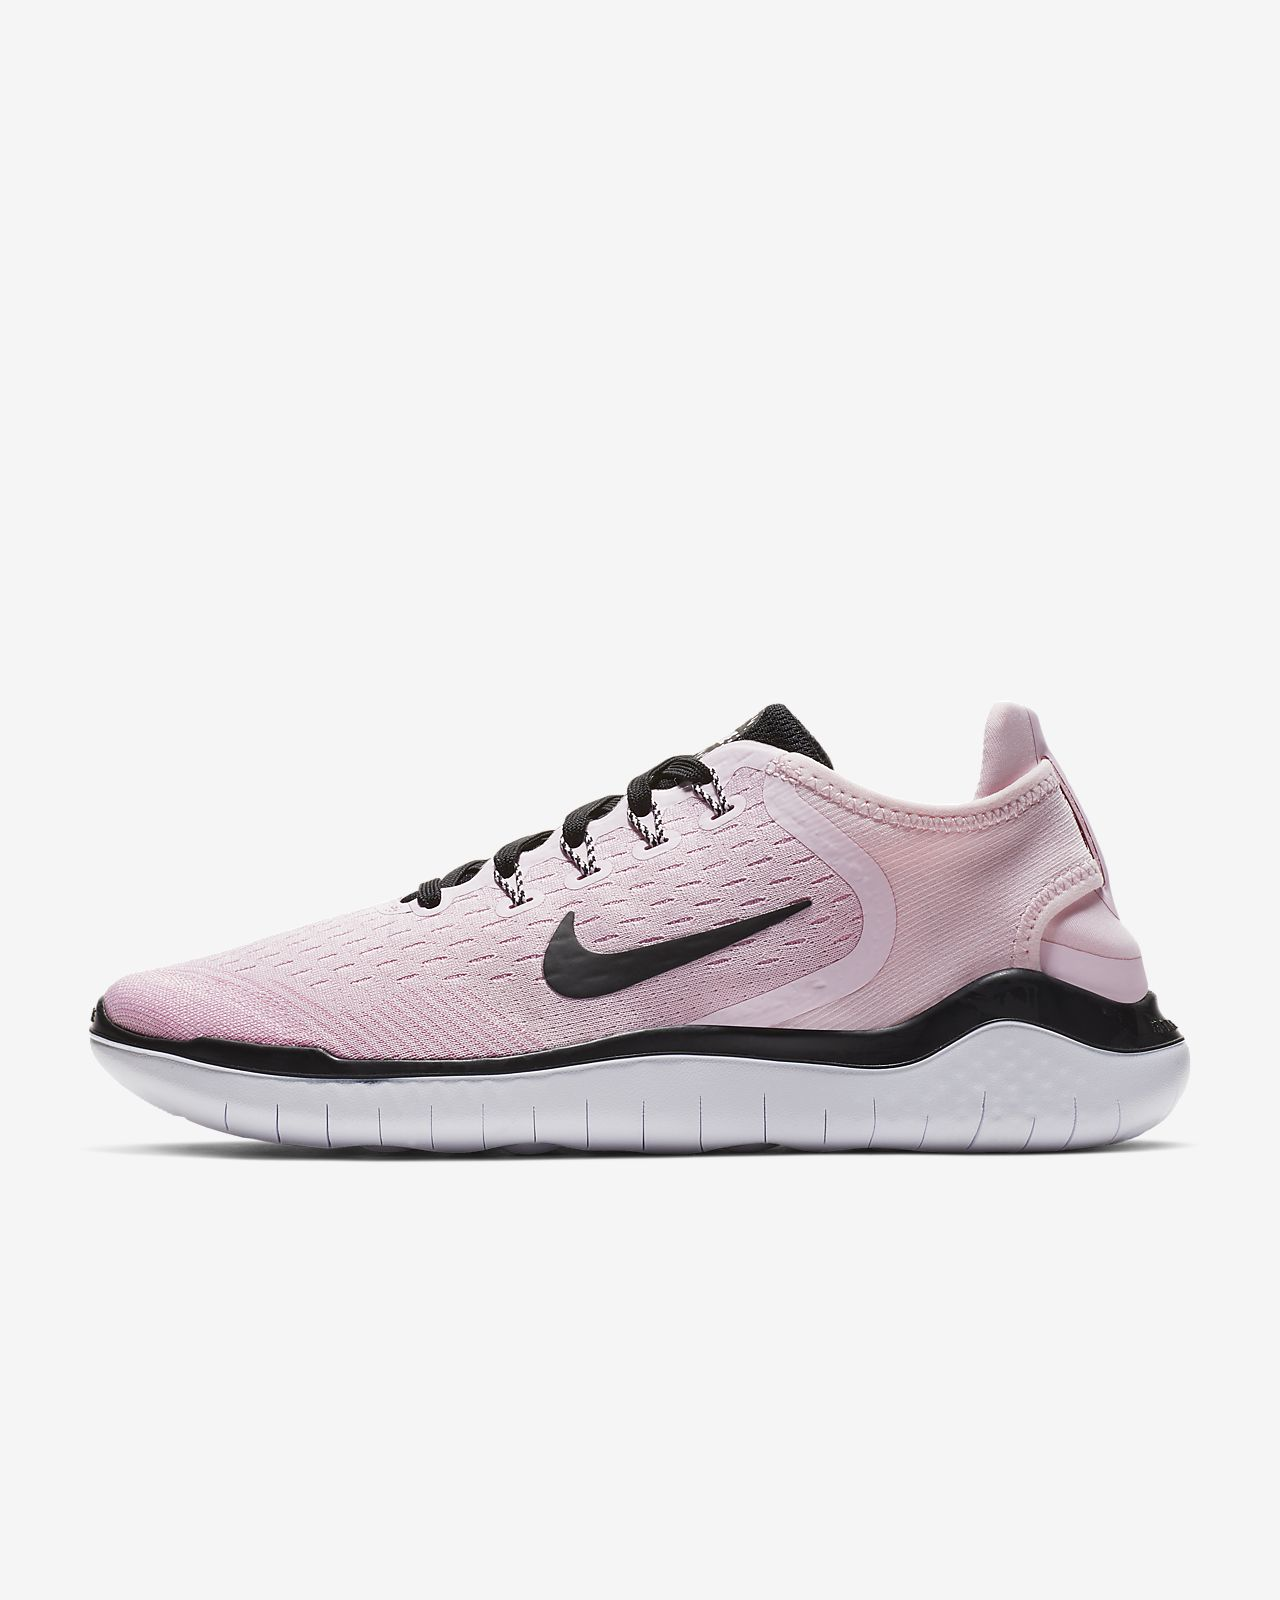 separation shoes 1c6f2 40a58 ... Nike Free RN 2018 Womens Running Shoe